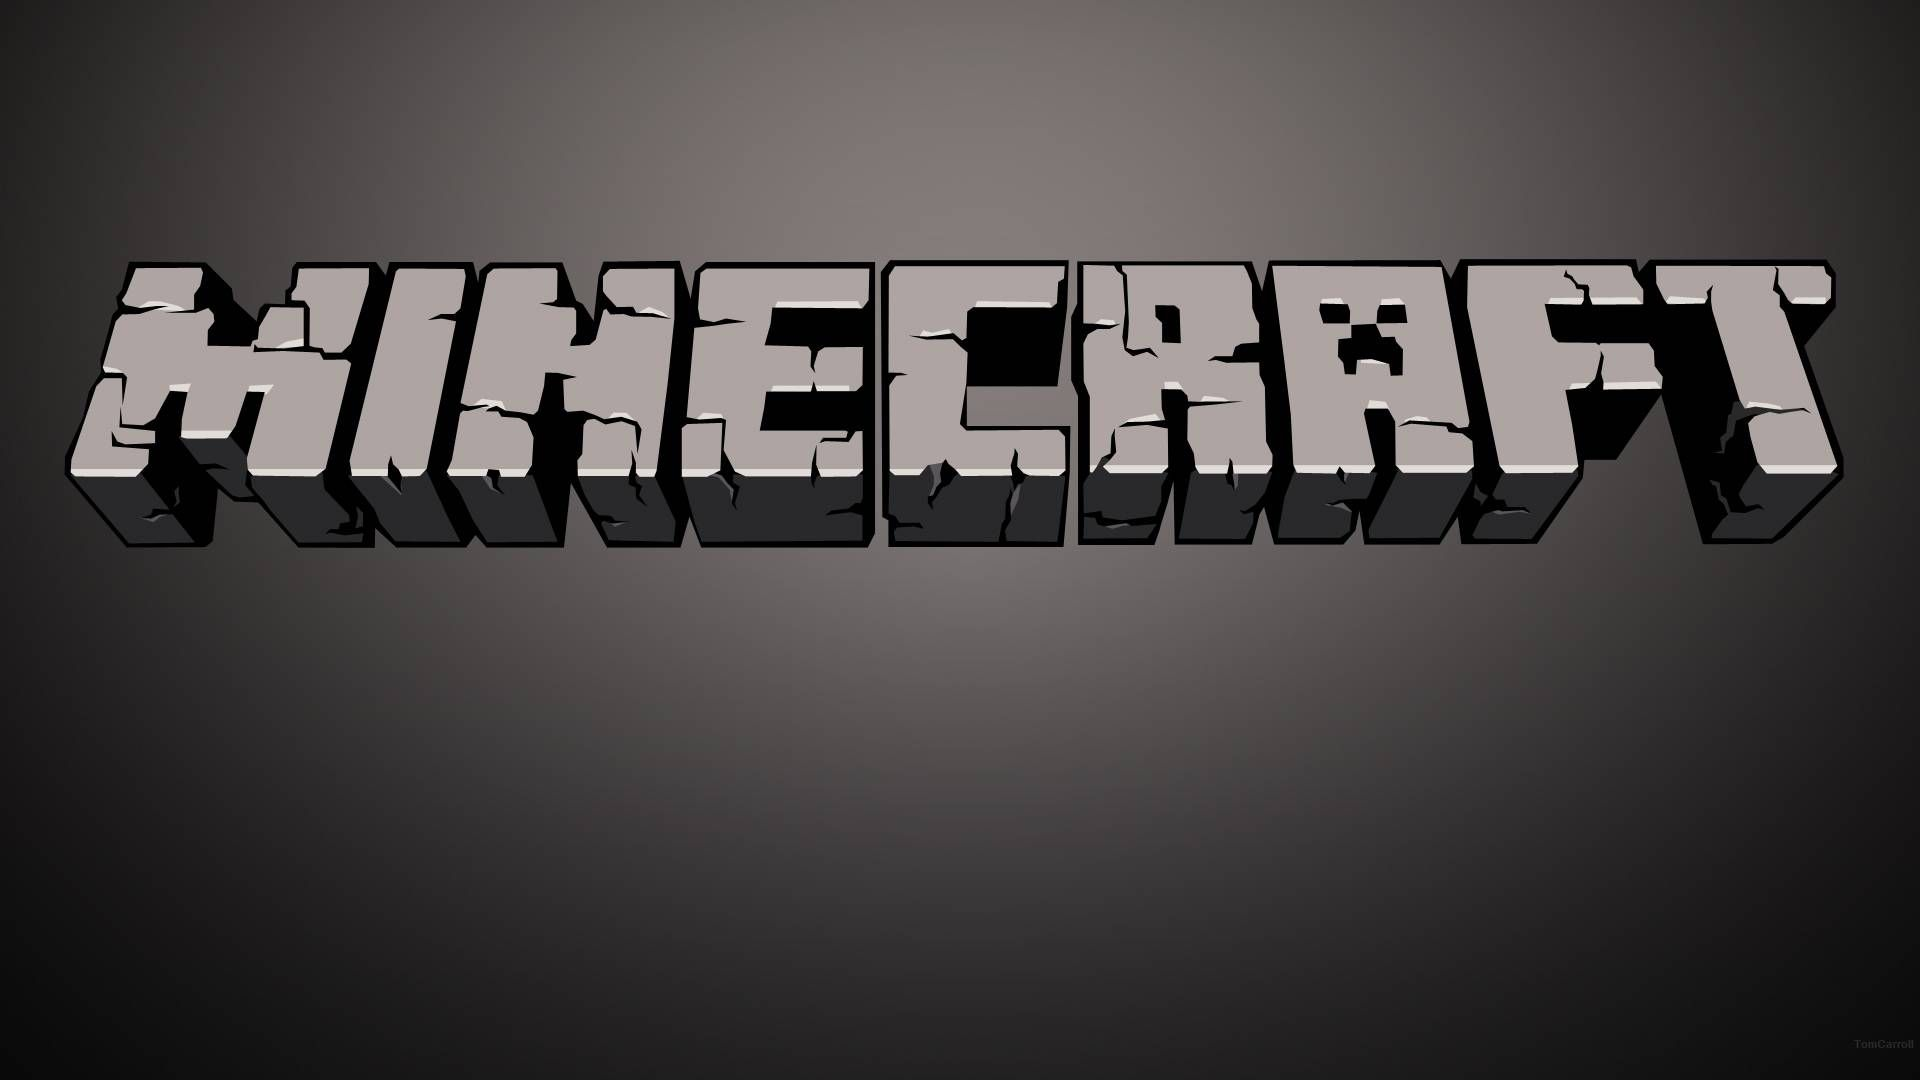 Minecraft Creator Wallpaper CoolWall 1440x810 Wallpapers Free Download 33